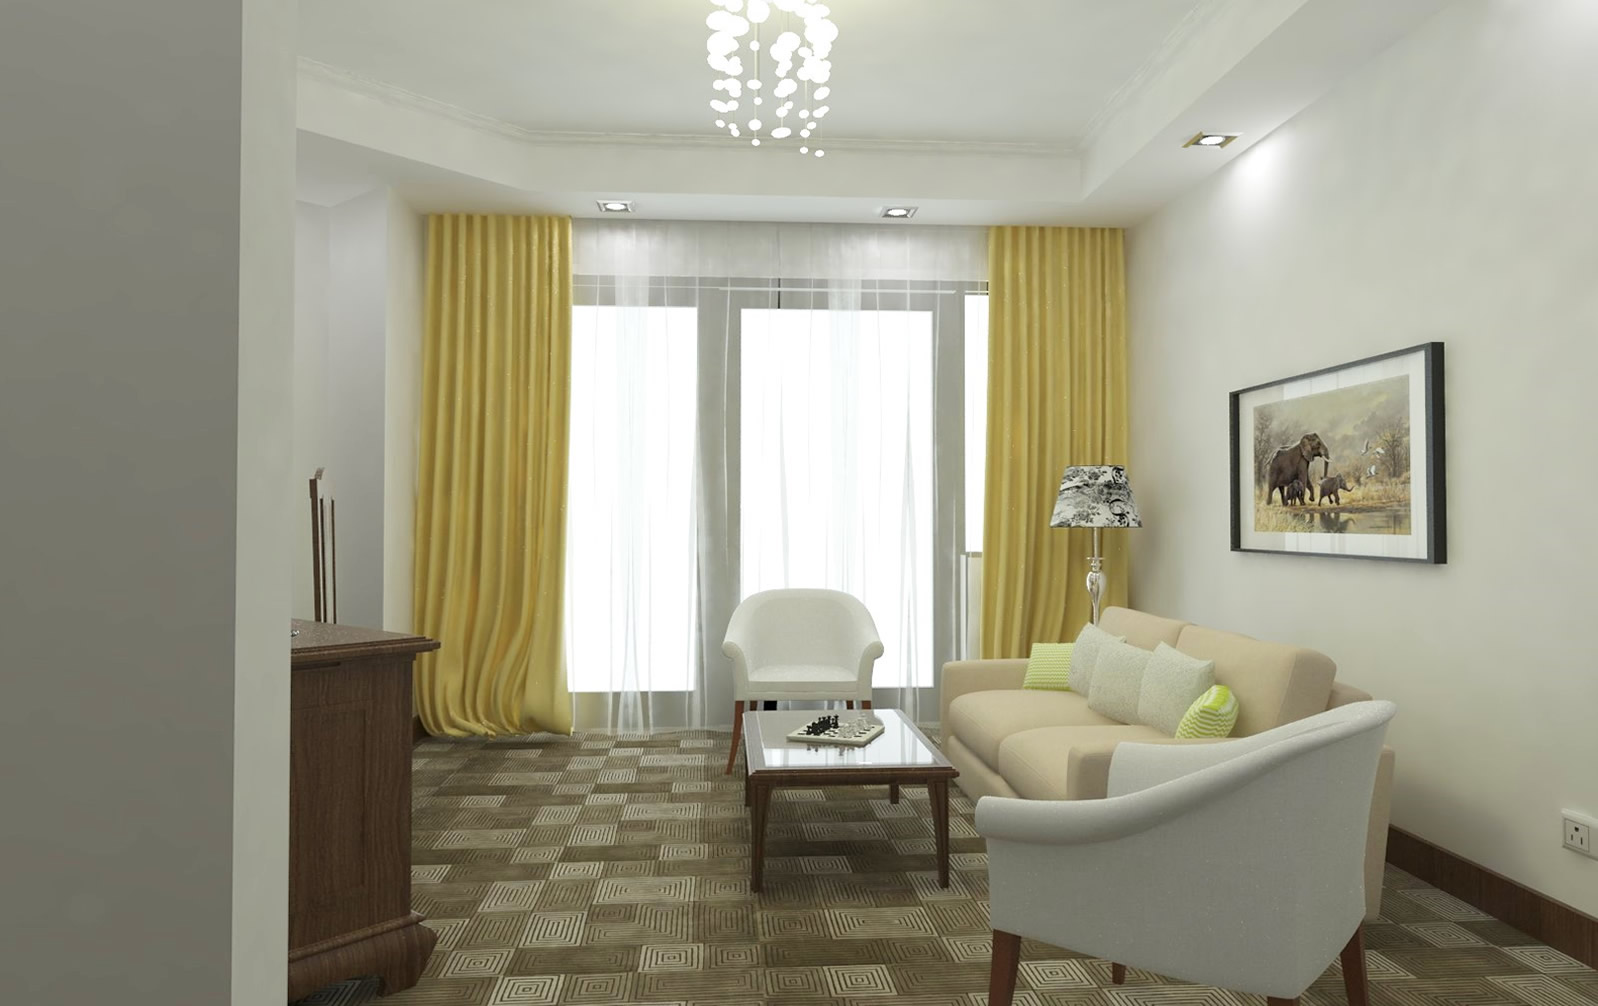 INHOUSE   INTERIOR DESIGN SERVICES IN NAIROBI KENYA, EAST AFRICA,INTERIOR  FURNISHING AND FIT OUT SERVICES,DESIGN AND BUILD | Home